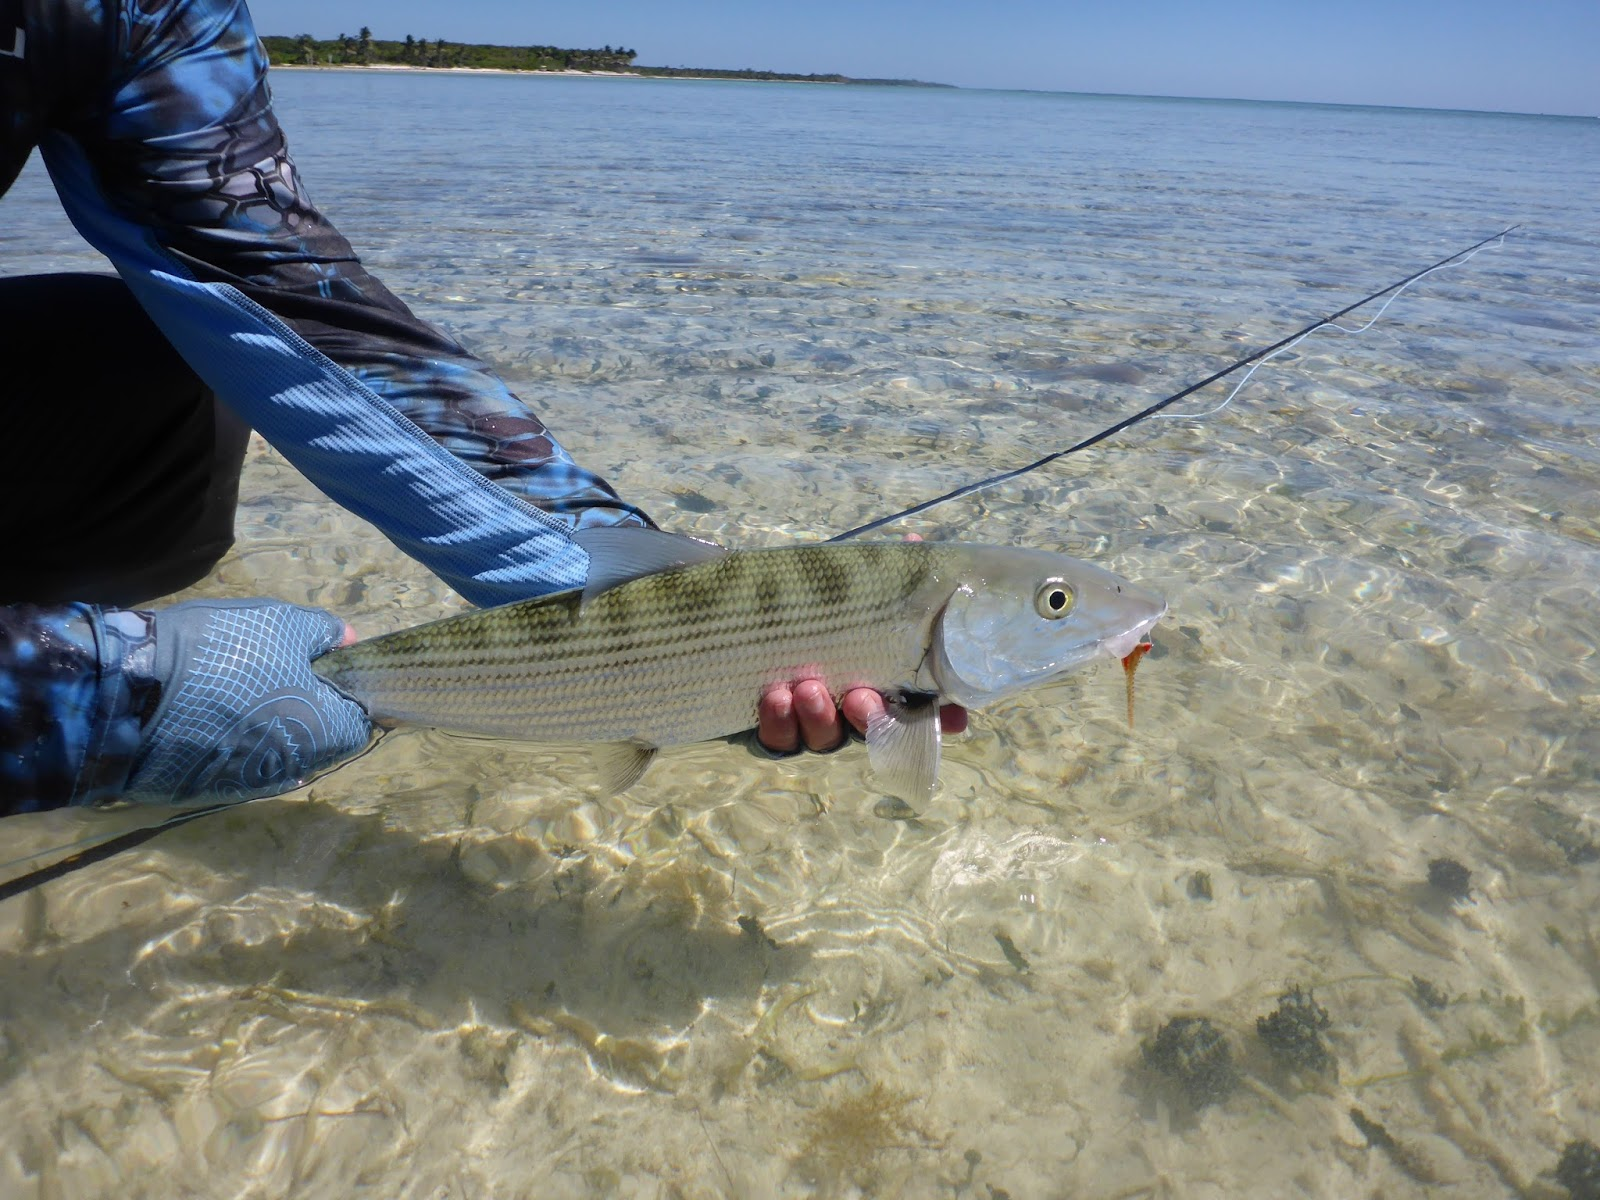 belize essay A few weeks back, my wife, kim, and i travelled to punta gorda, belize, to serve as hosts on orvis adventures hosted couples week at belcampo lodge this week was intended to give anglers and non-anglers alike a taste of belize's remarkable flats fishery, as well as a look at the remarkable physical and.